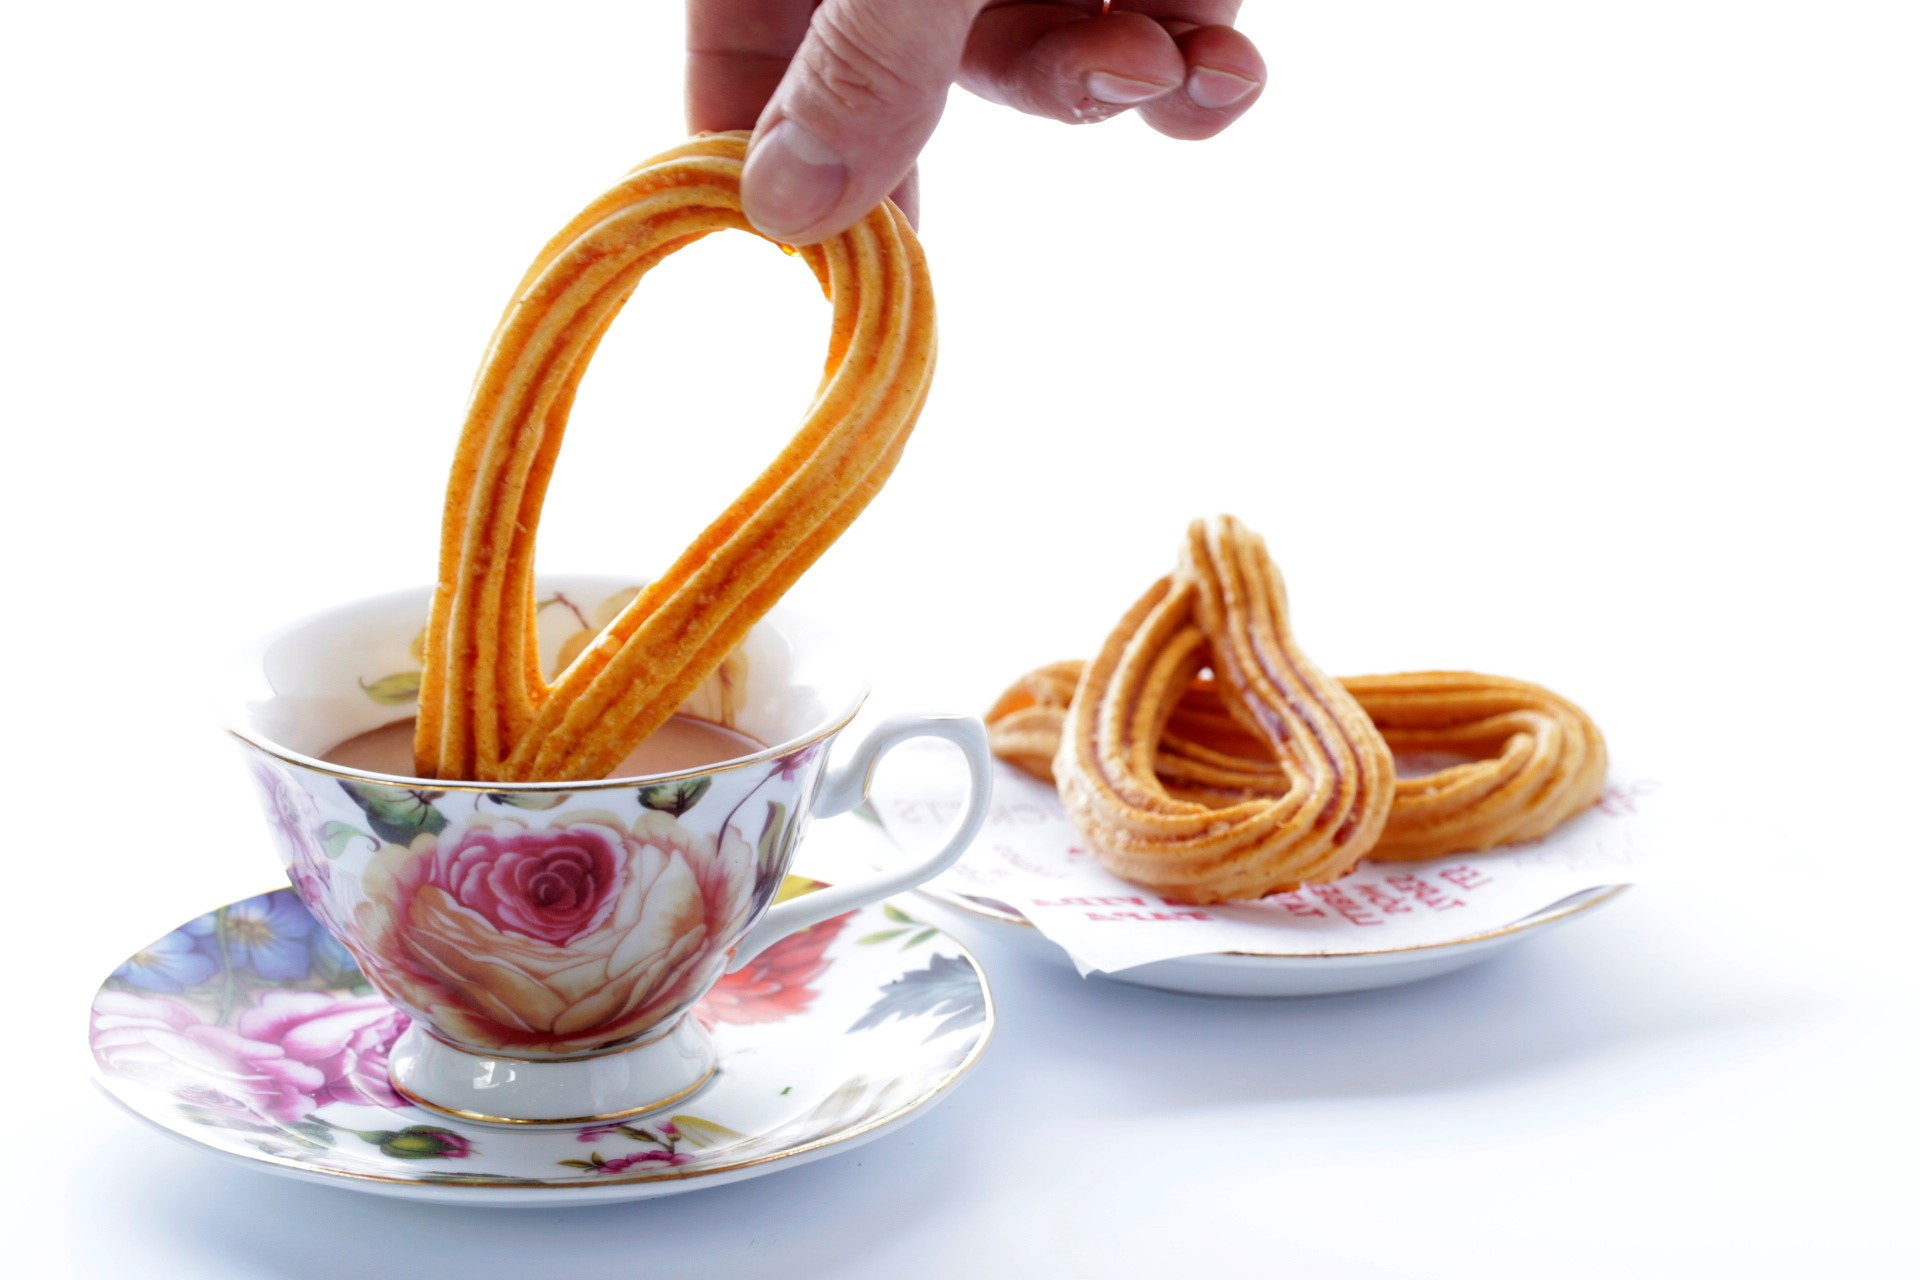 Cakes and Bubbles will serve sweets like these churros con chocolate.